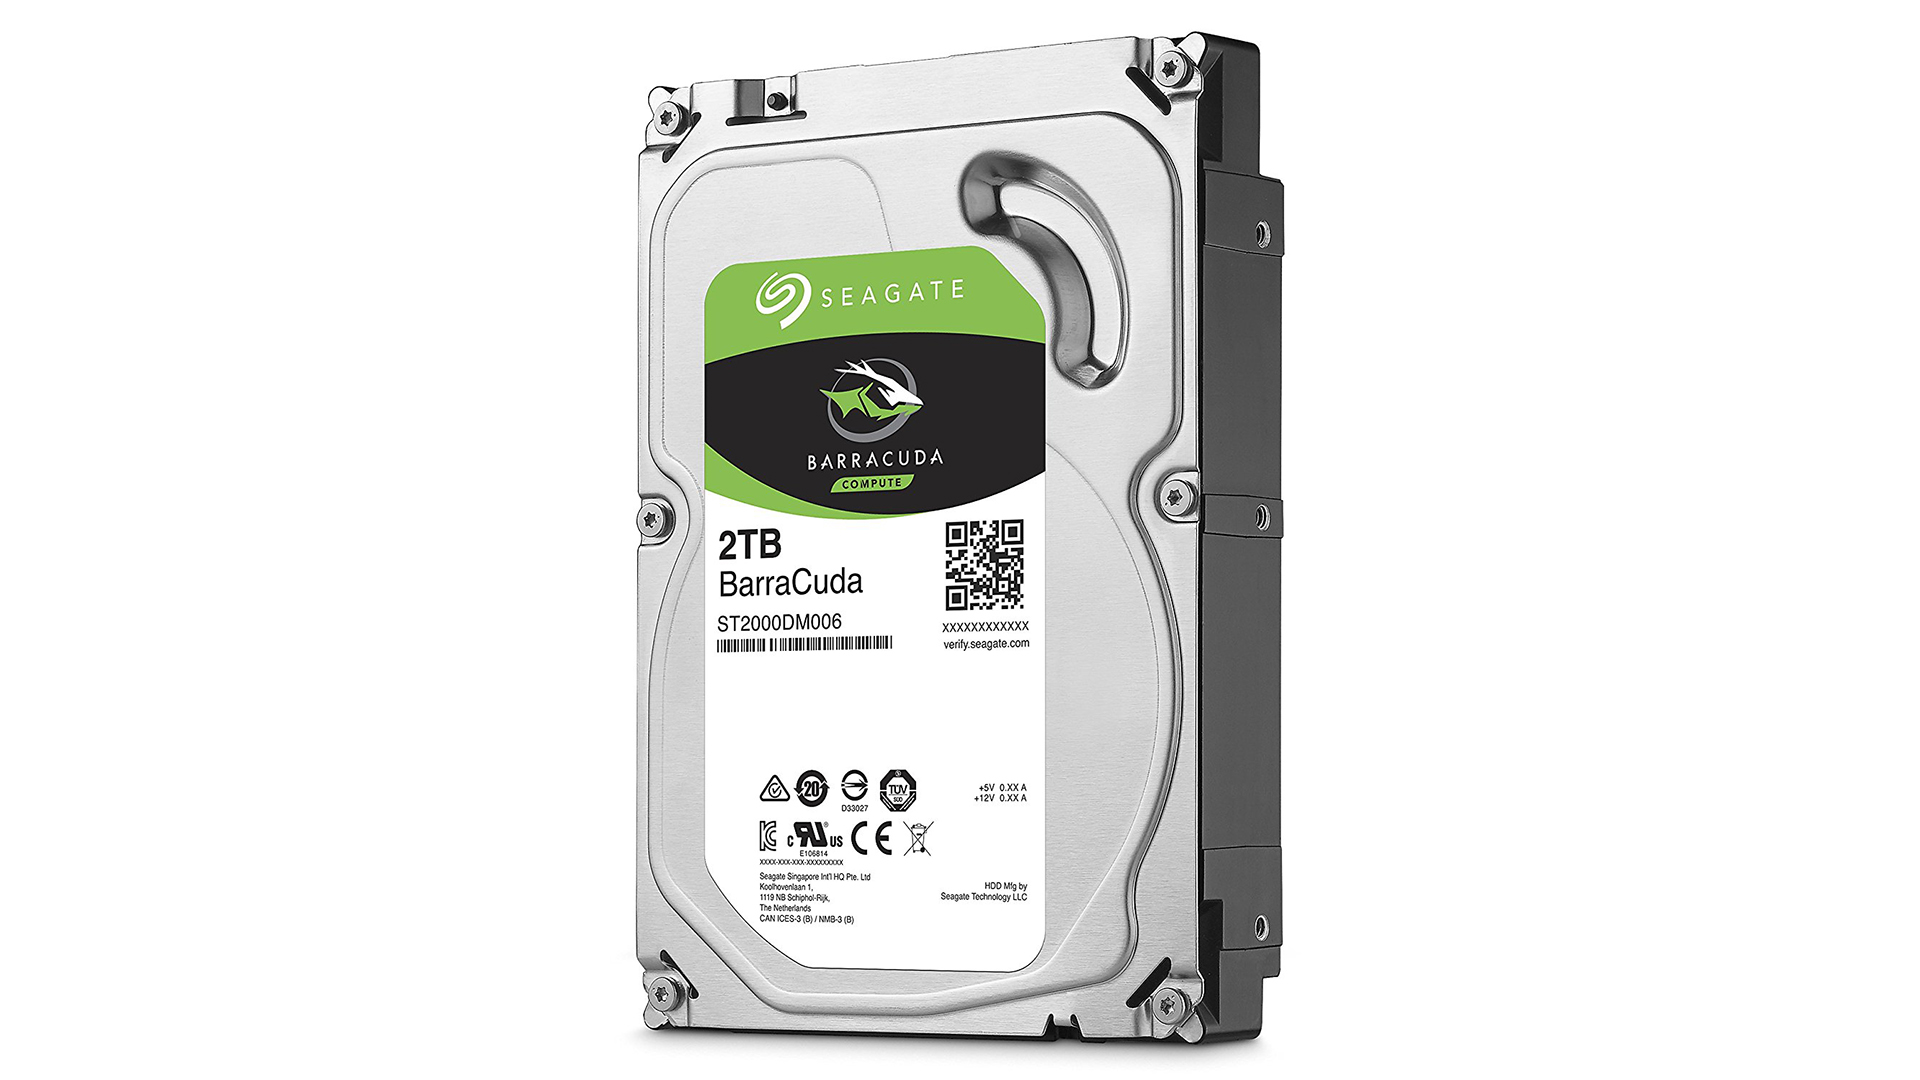 Best hard drive: Seagate BarraCuda